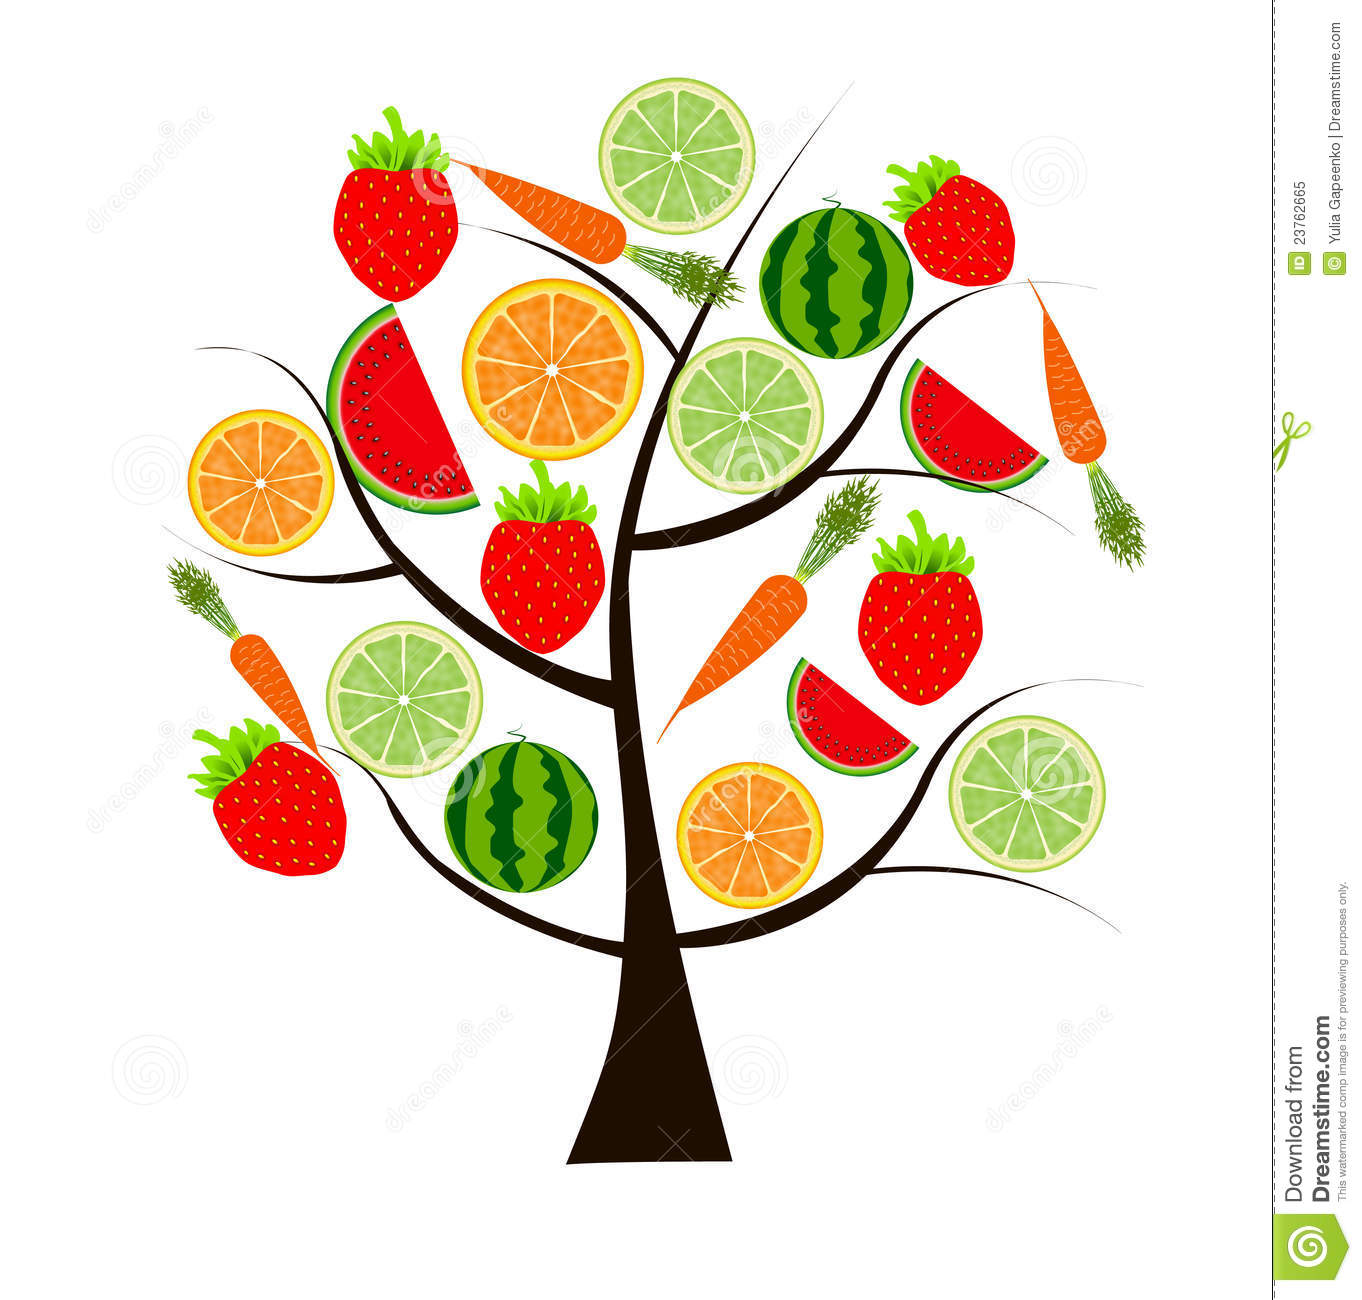 Fruit Tree For Your Design Illustration Royalty Free Stock ...